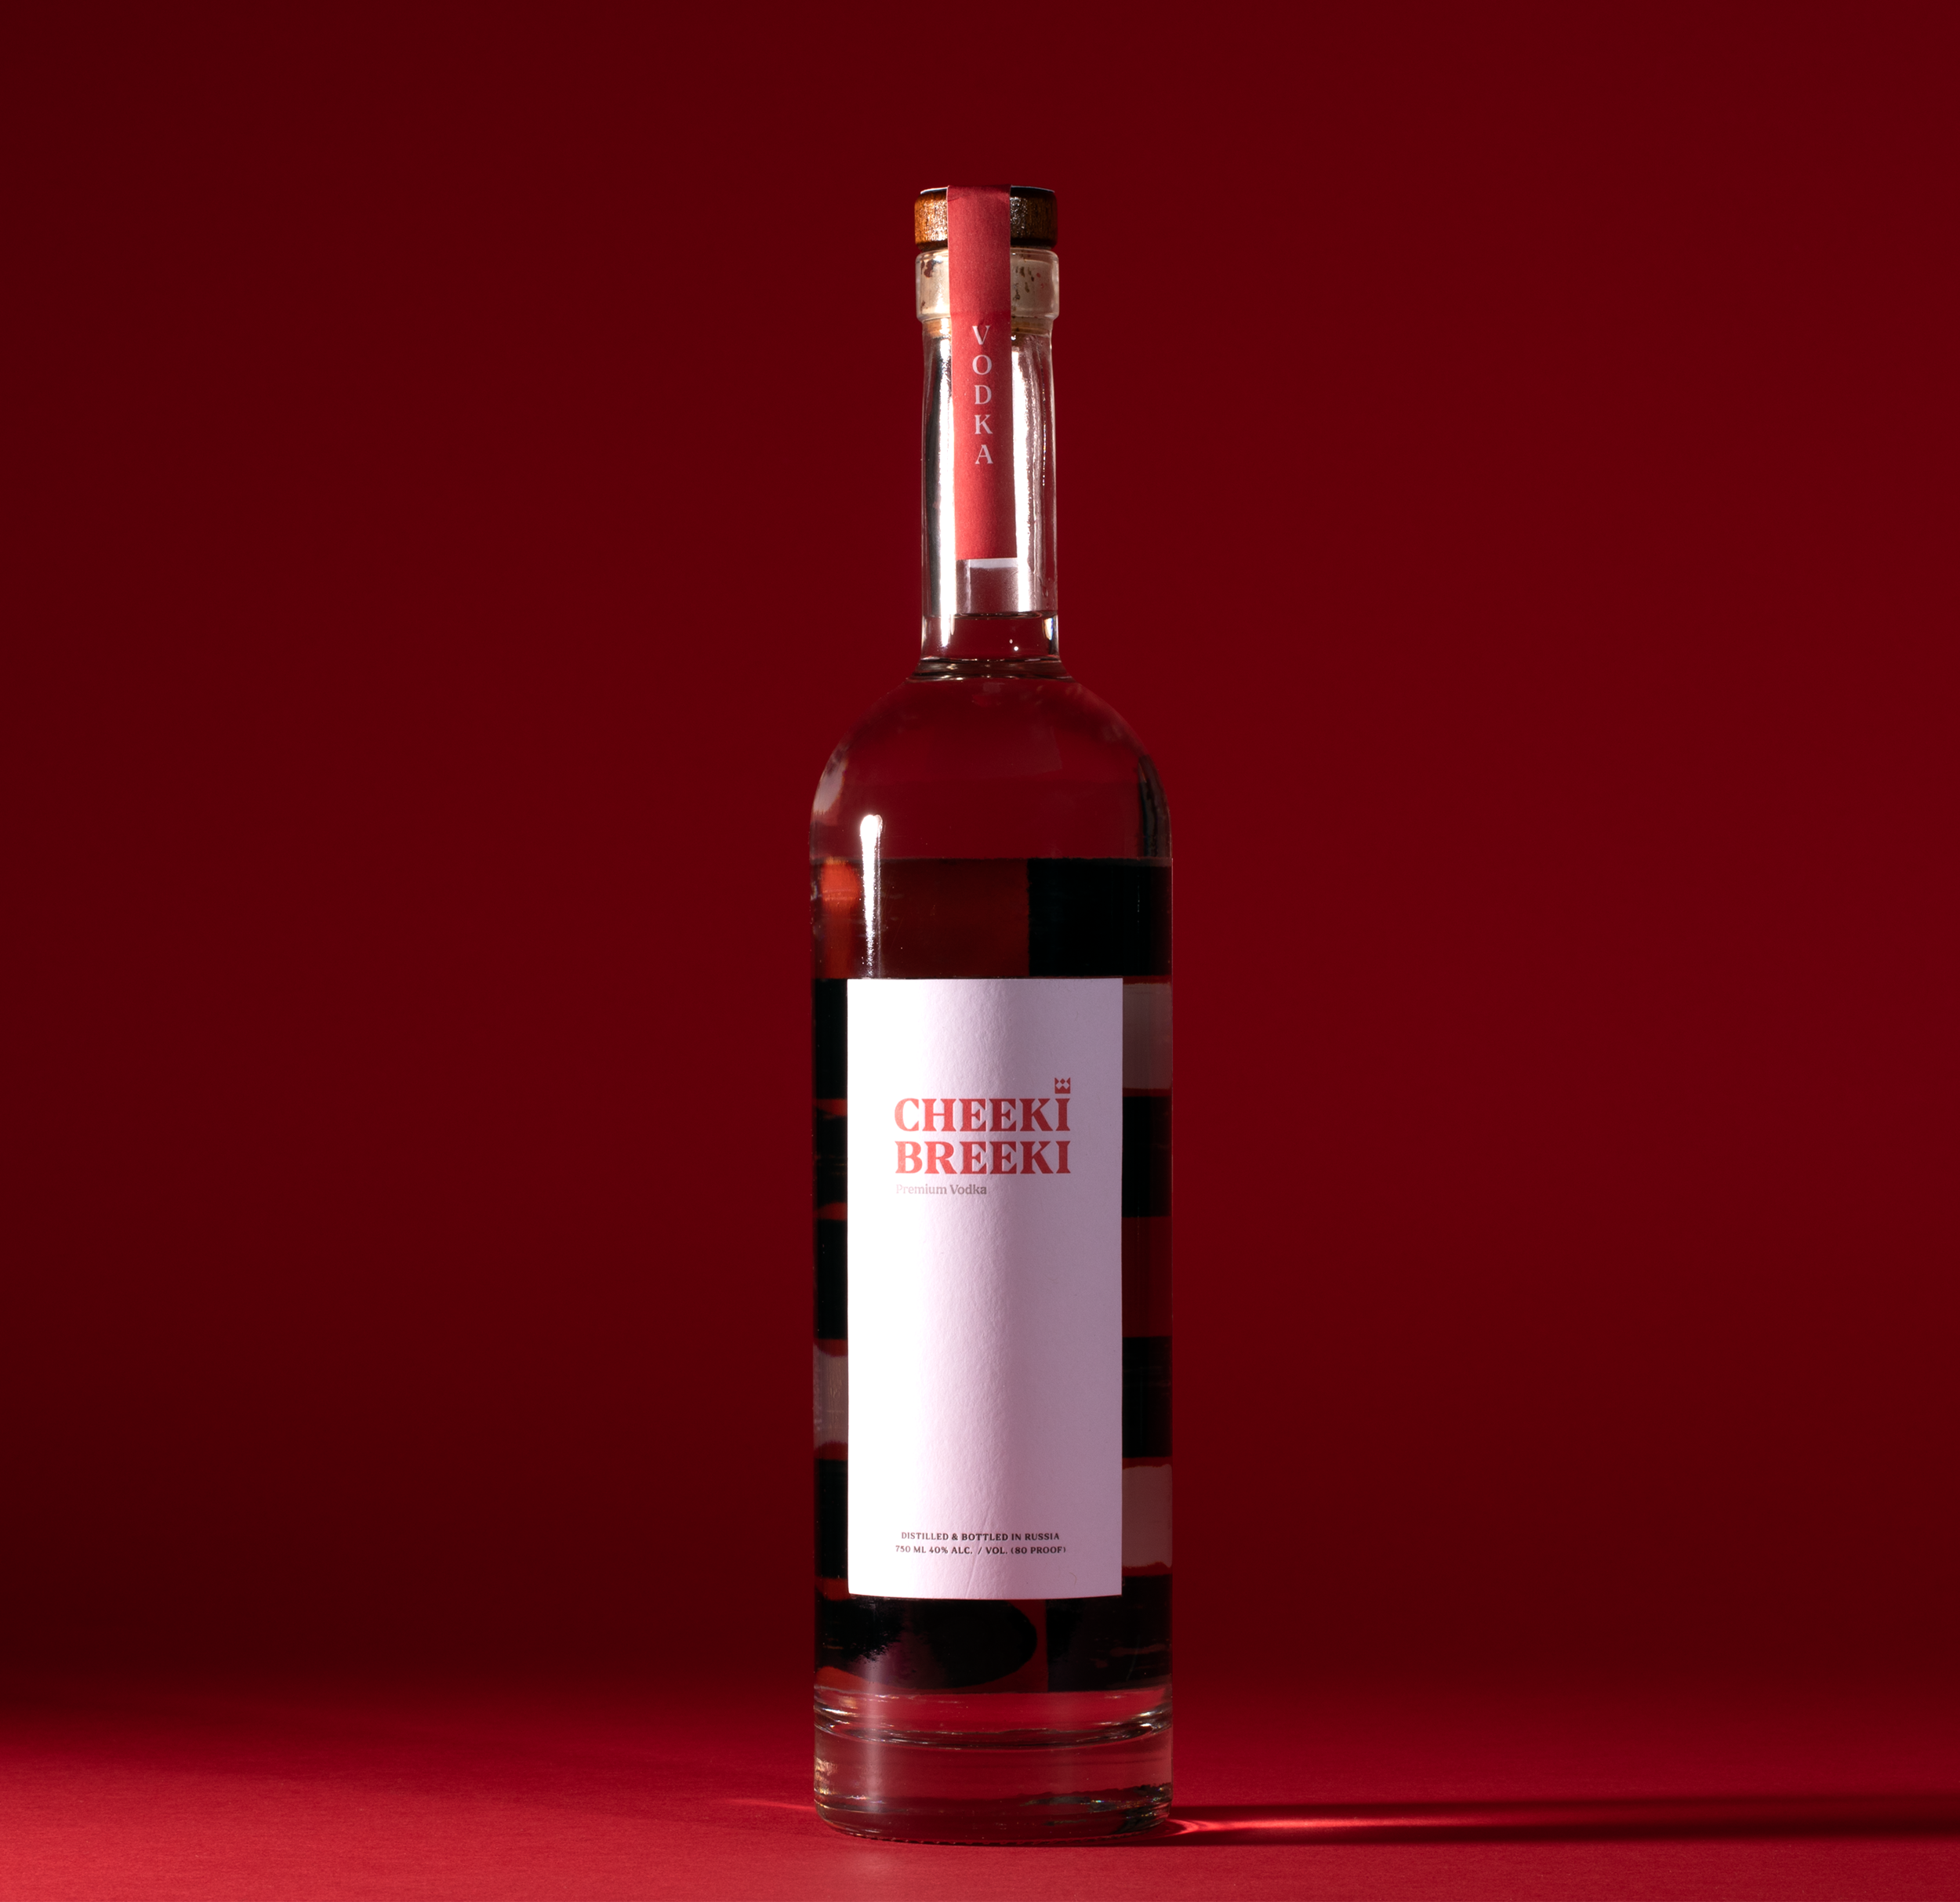 Cheeki Breeki Vodka Bottle on Red Background